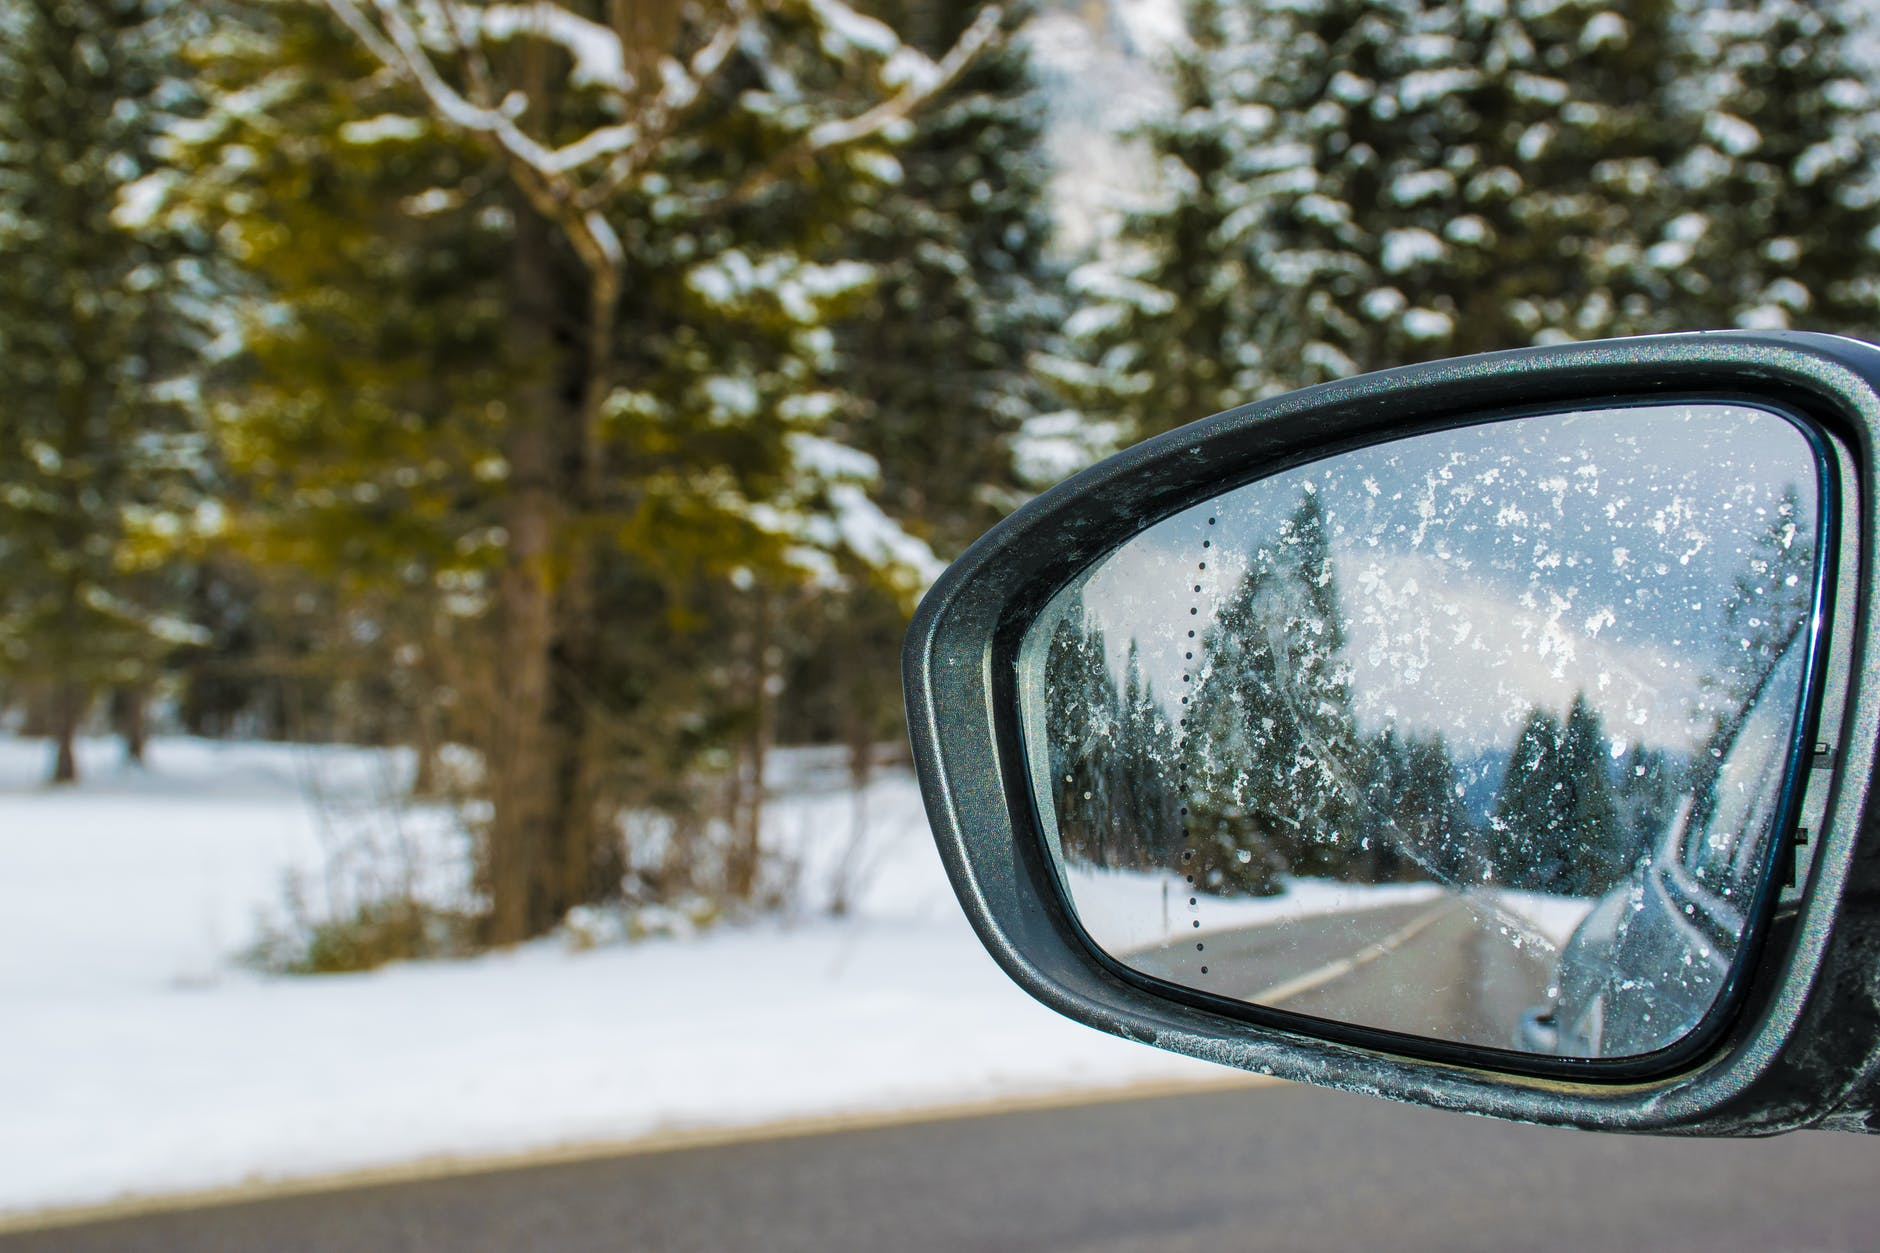 Winter driving tips to keep you safe